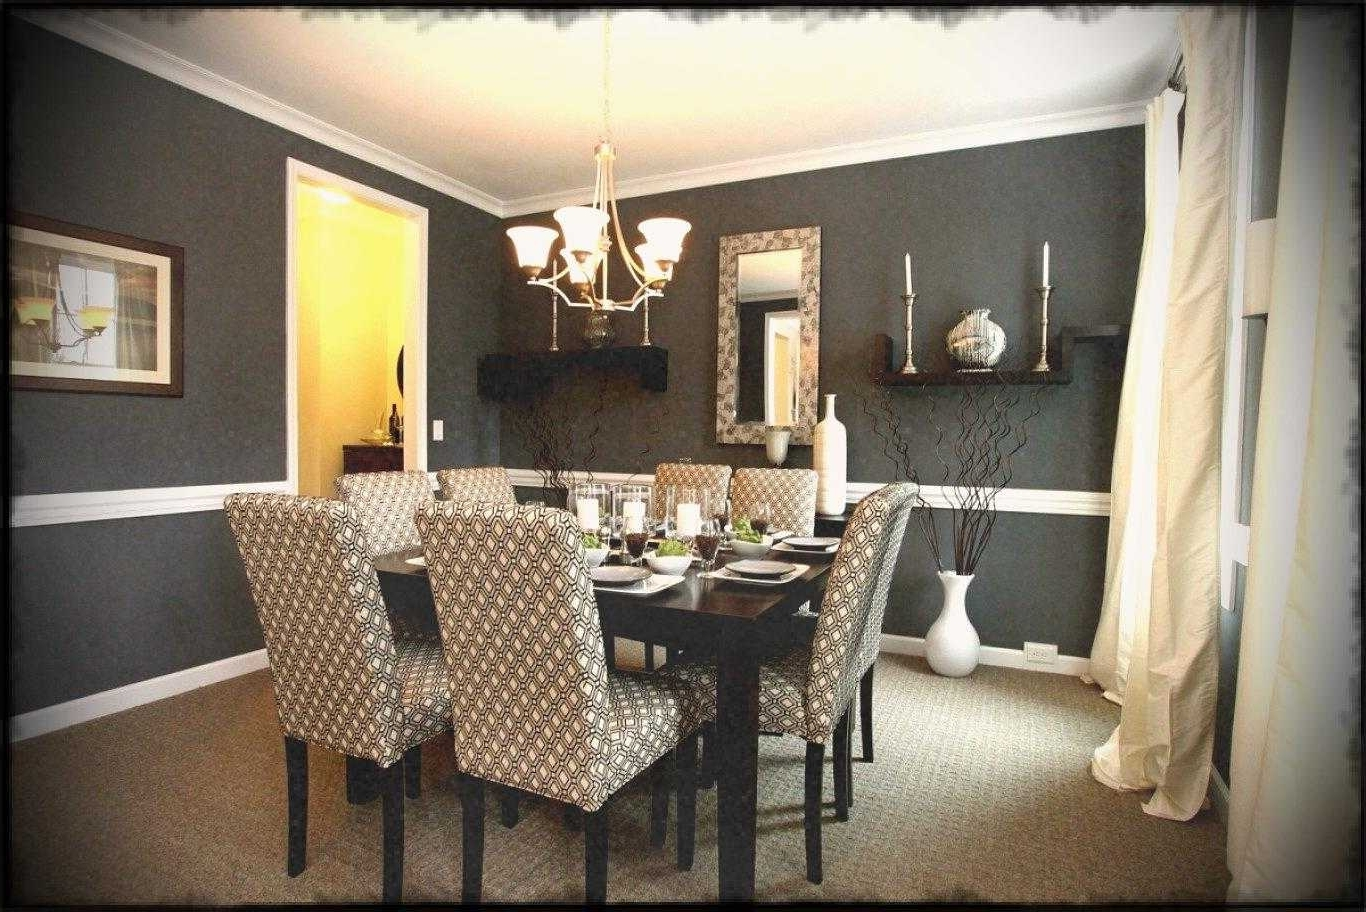 Trendy Chicago Wall Art Within Stunning Modern Wall Art For Dining Room Collection Also Islamic (View 9 of 15)